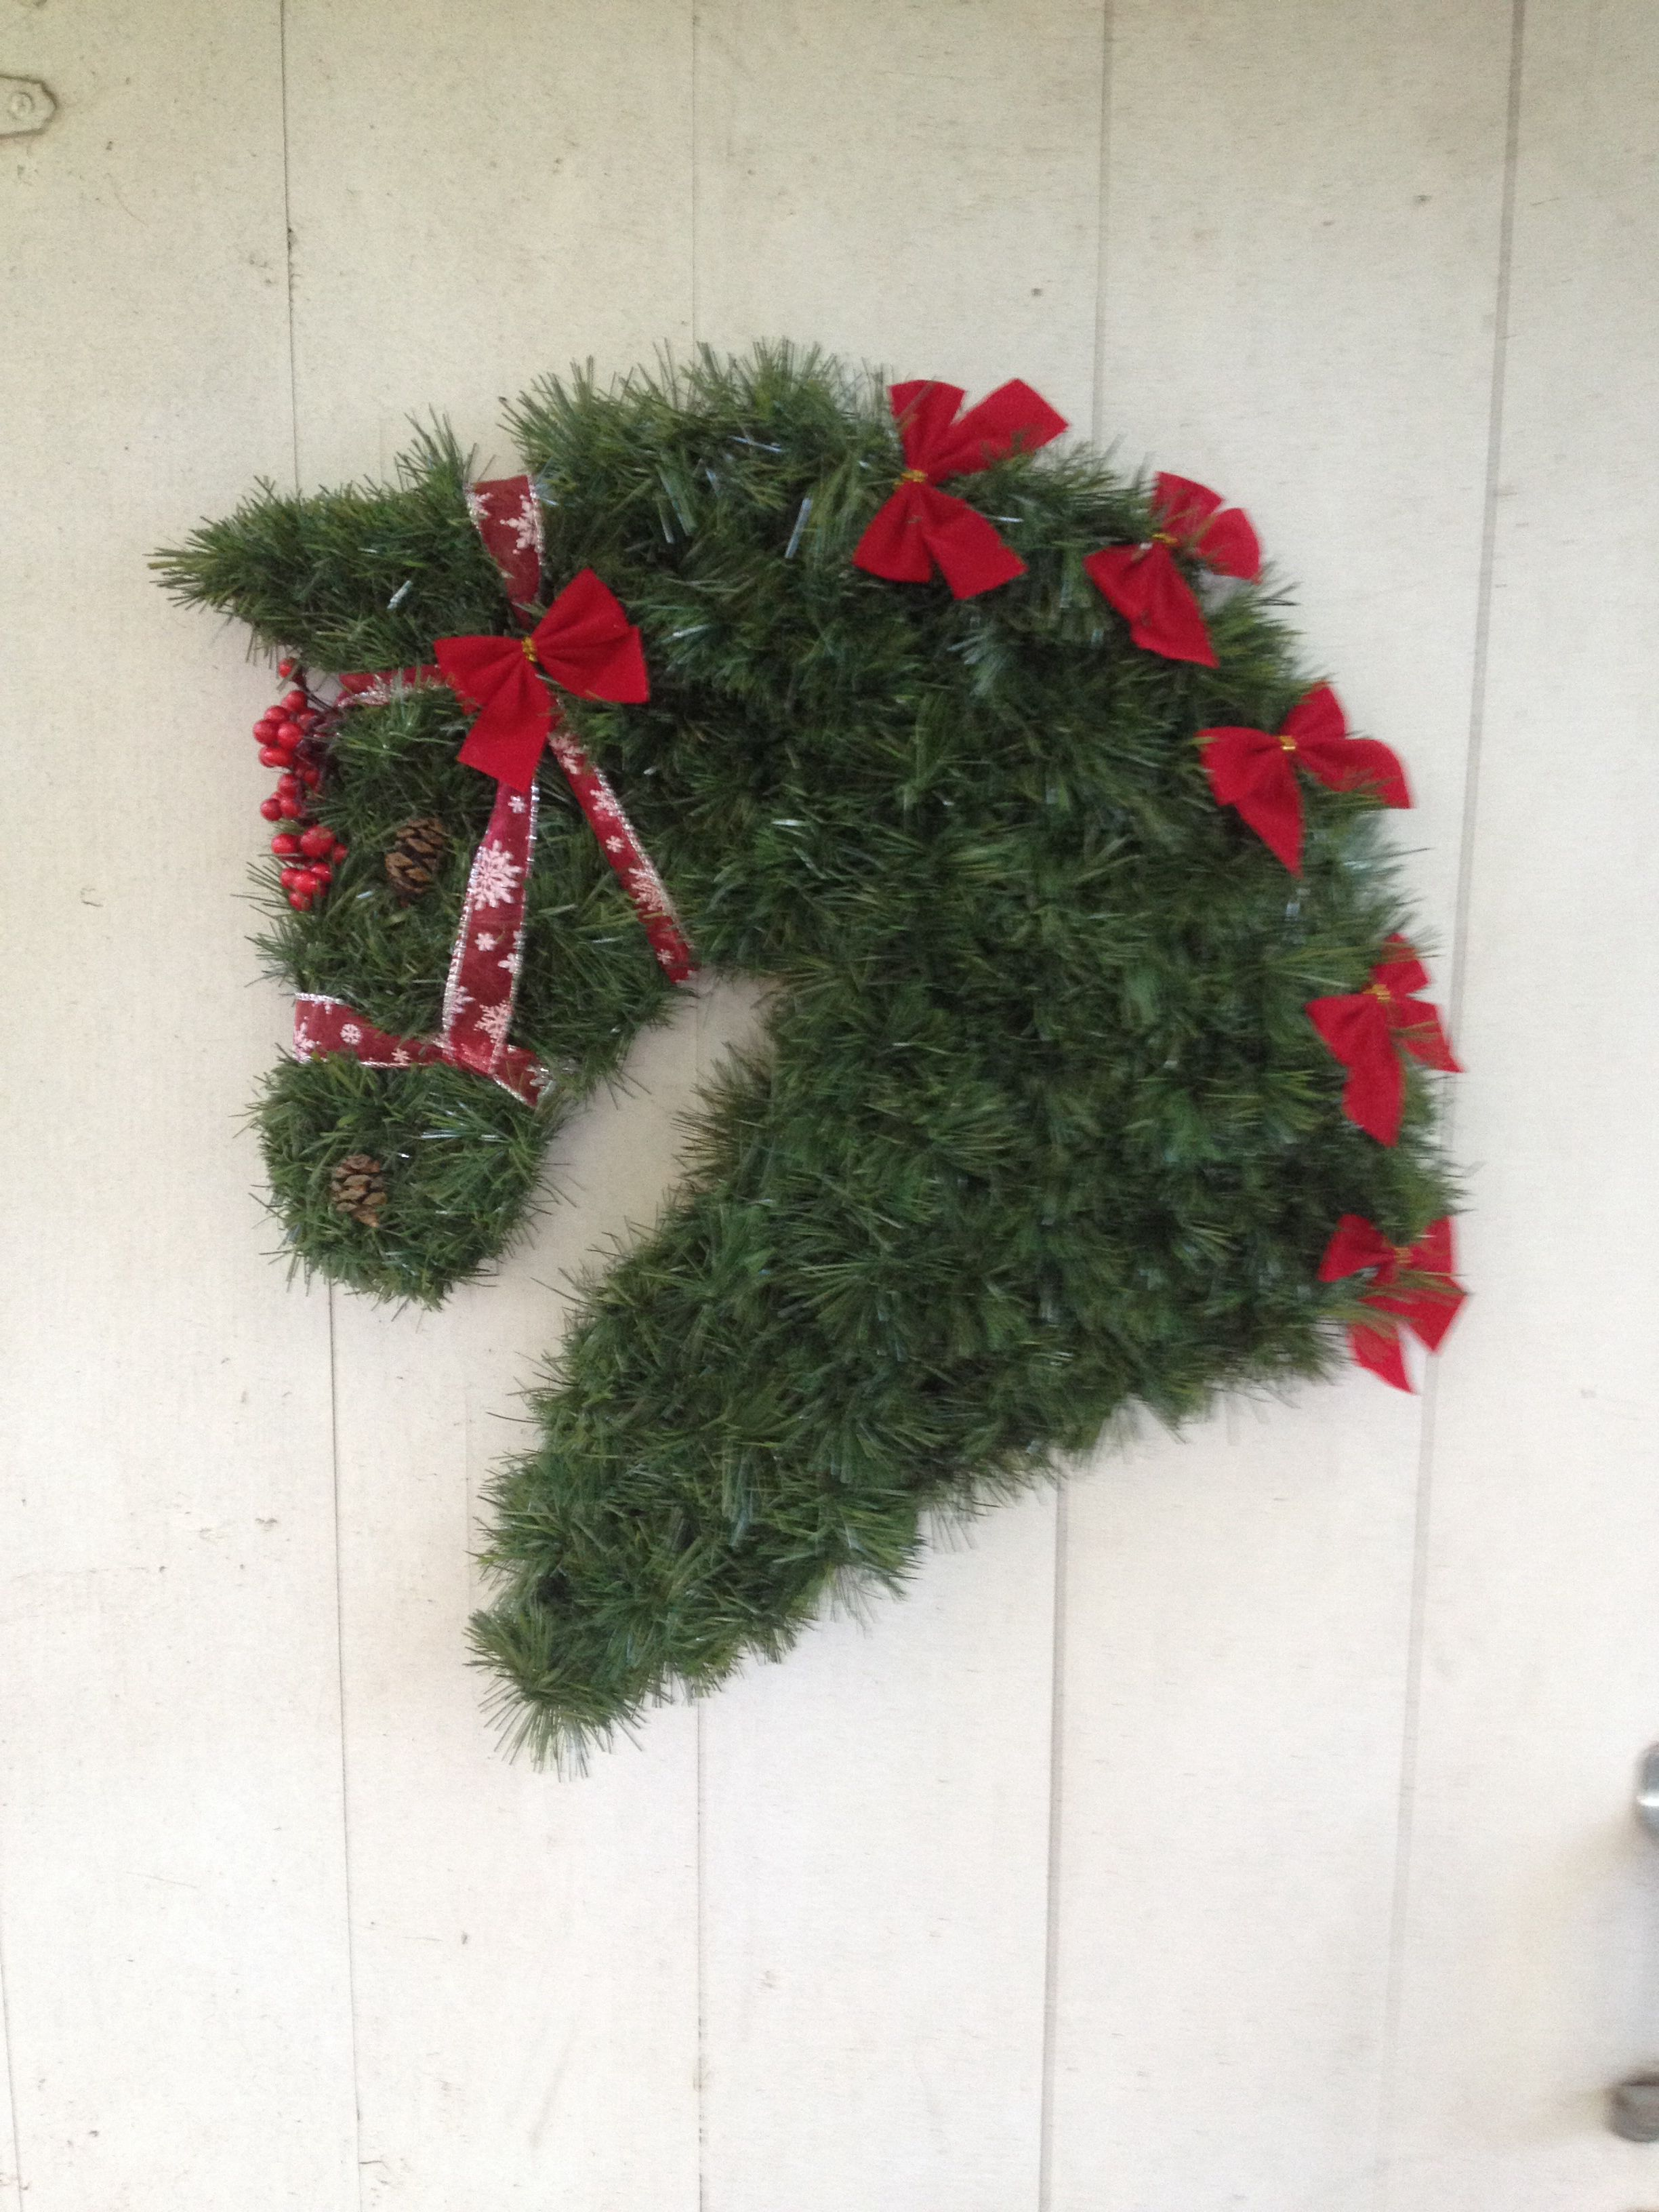 Horse Head Wreaths by Linda Dalziel. email: HorseHeadWreaths@aol.com